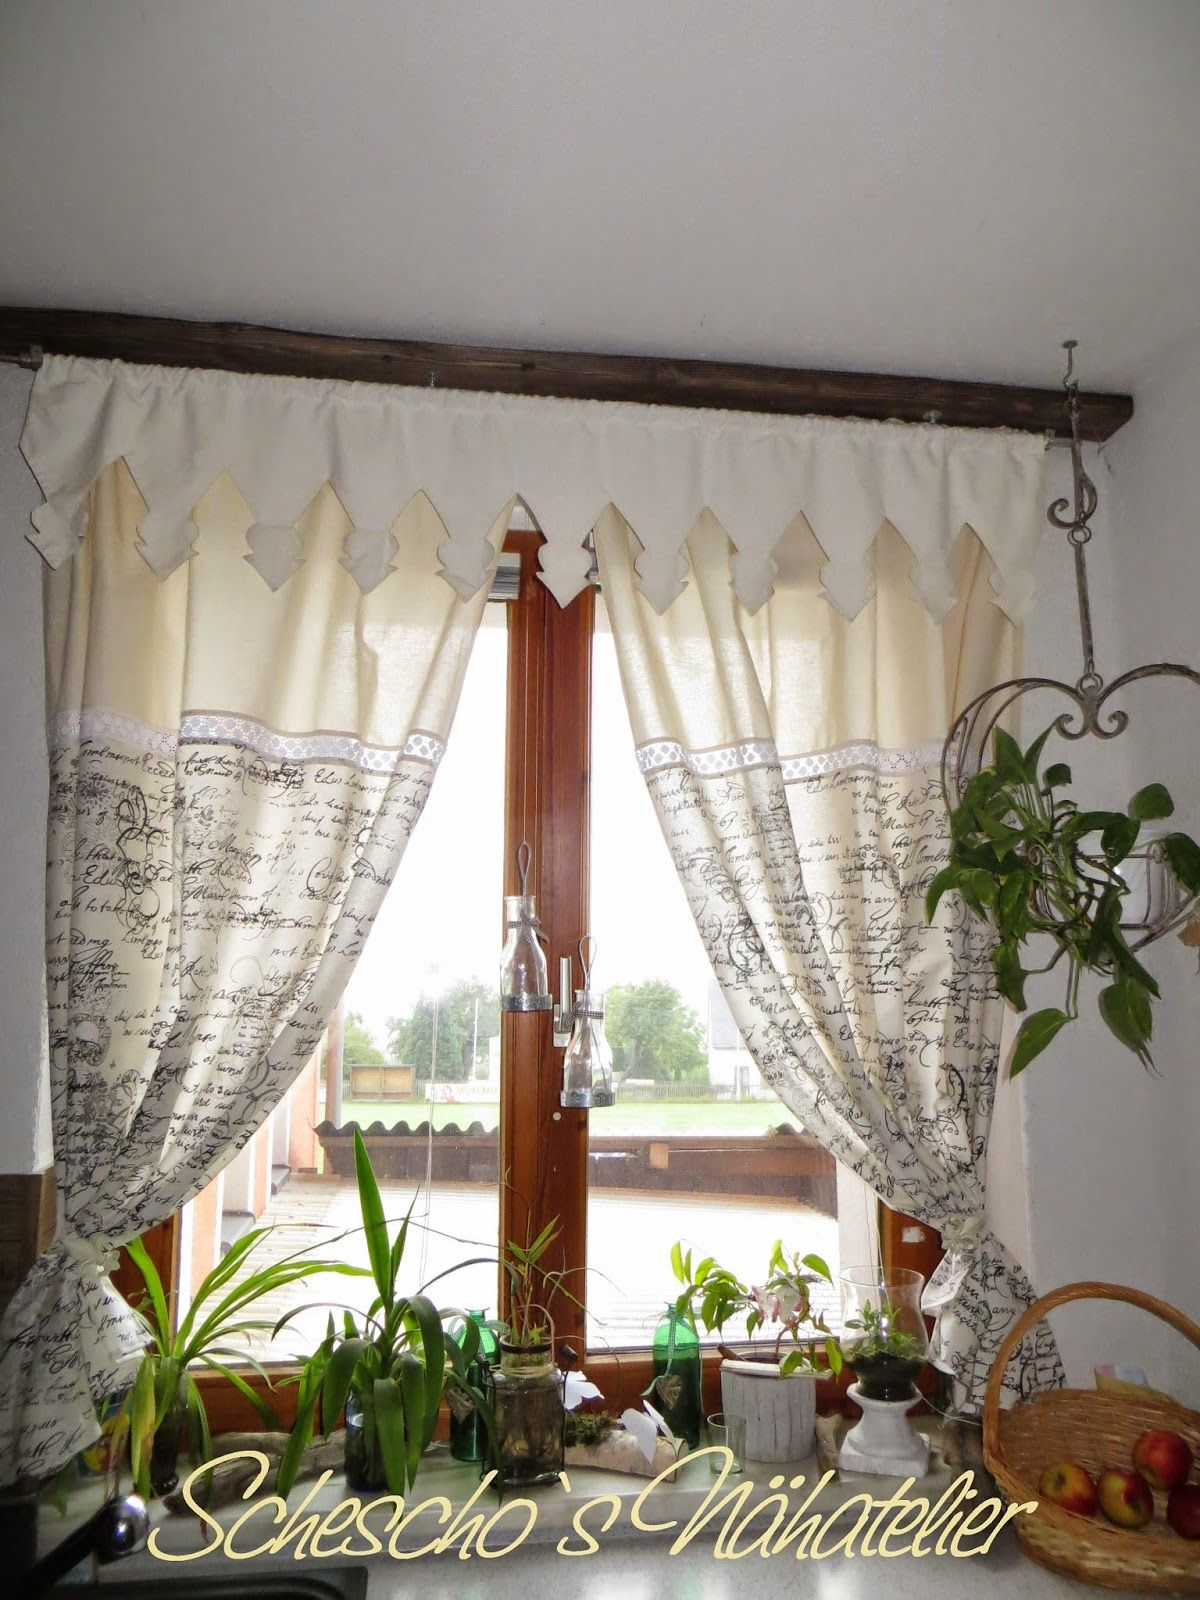 Schescho S Nähatelier Country Style Curtains Curtains Curtains Bedroom